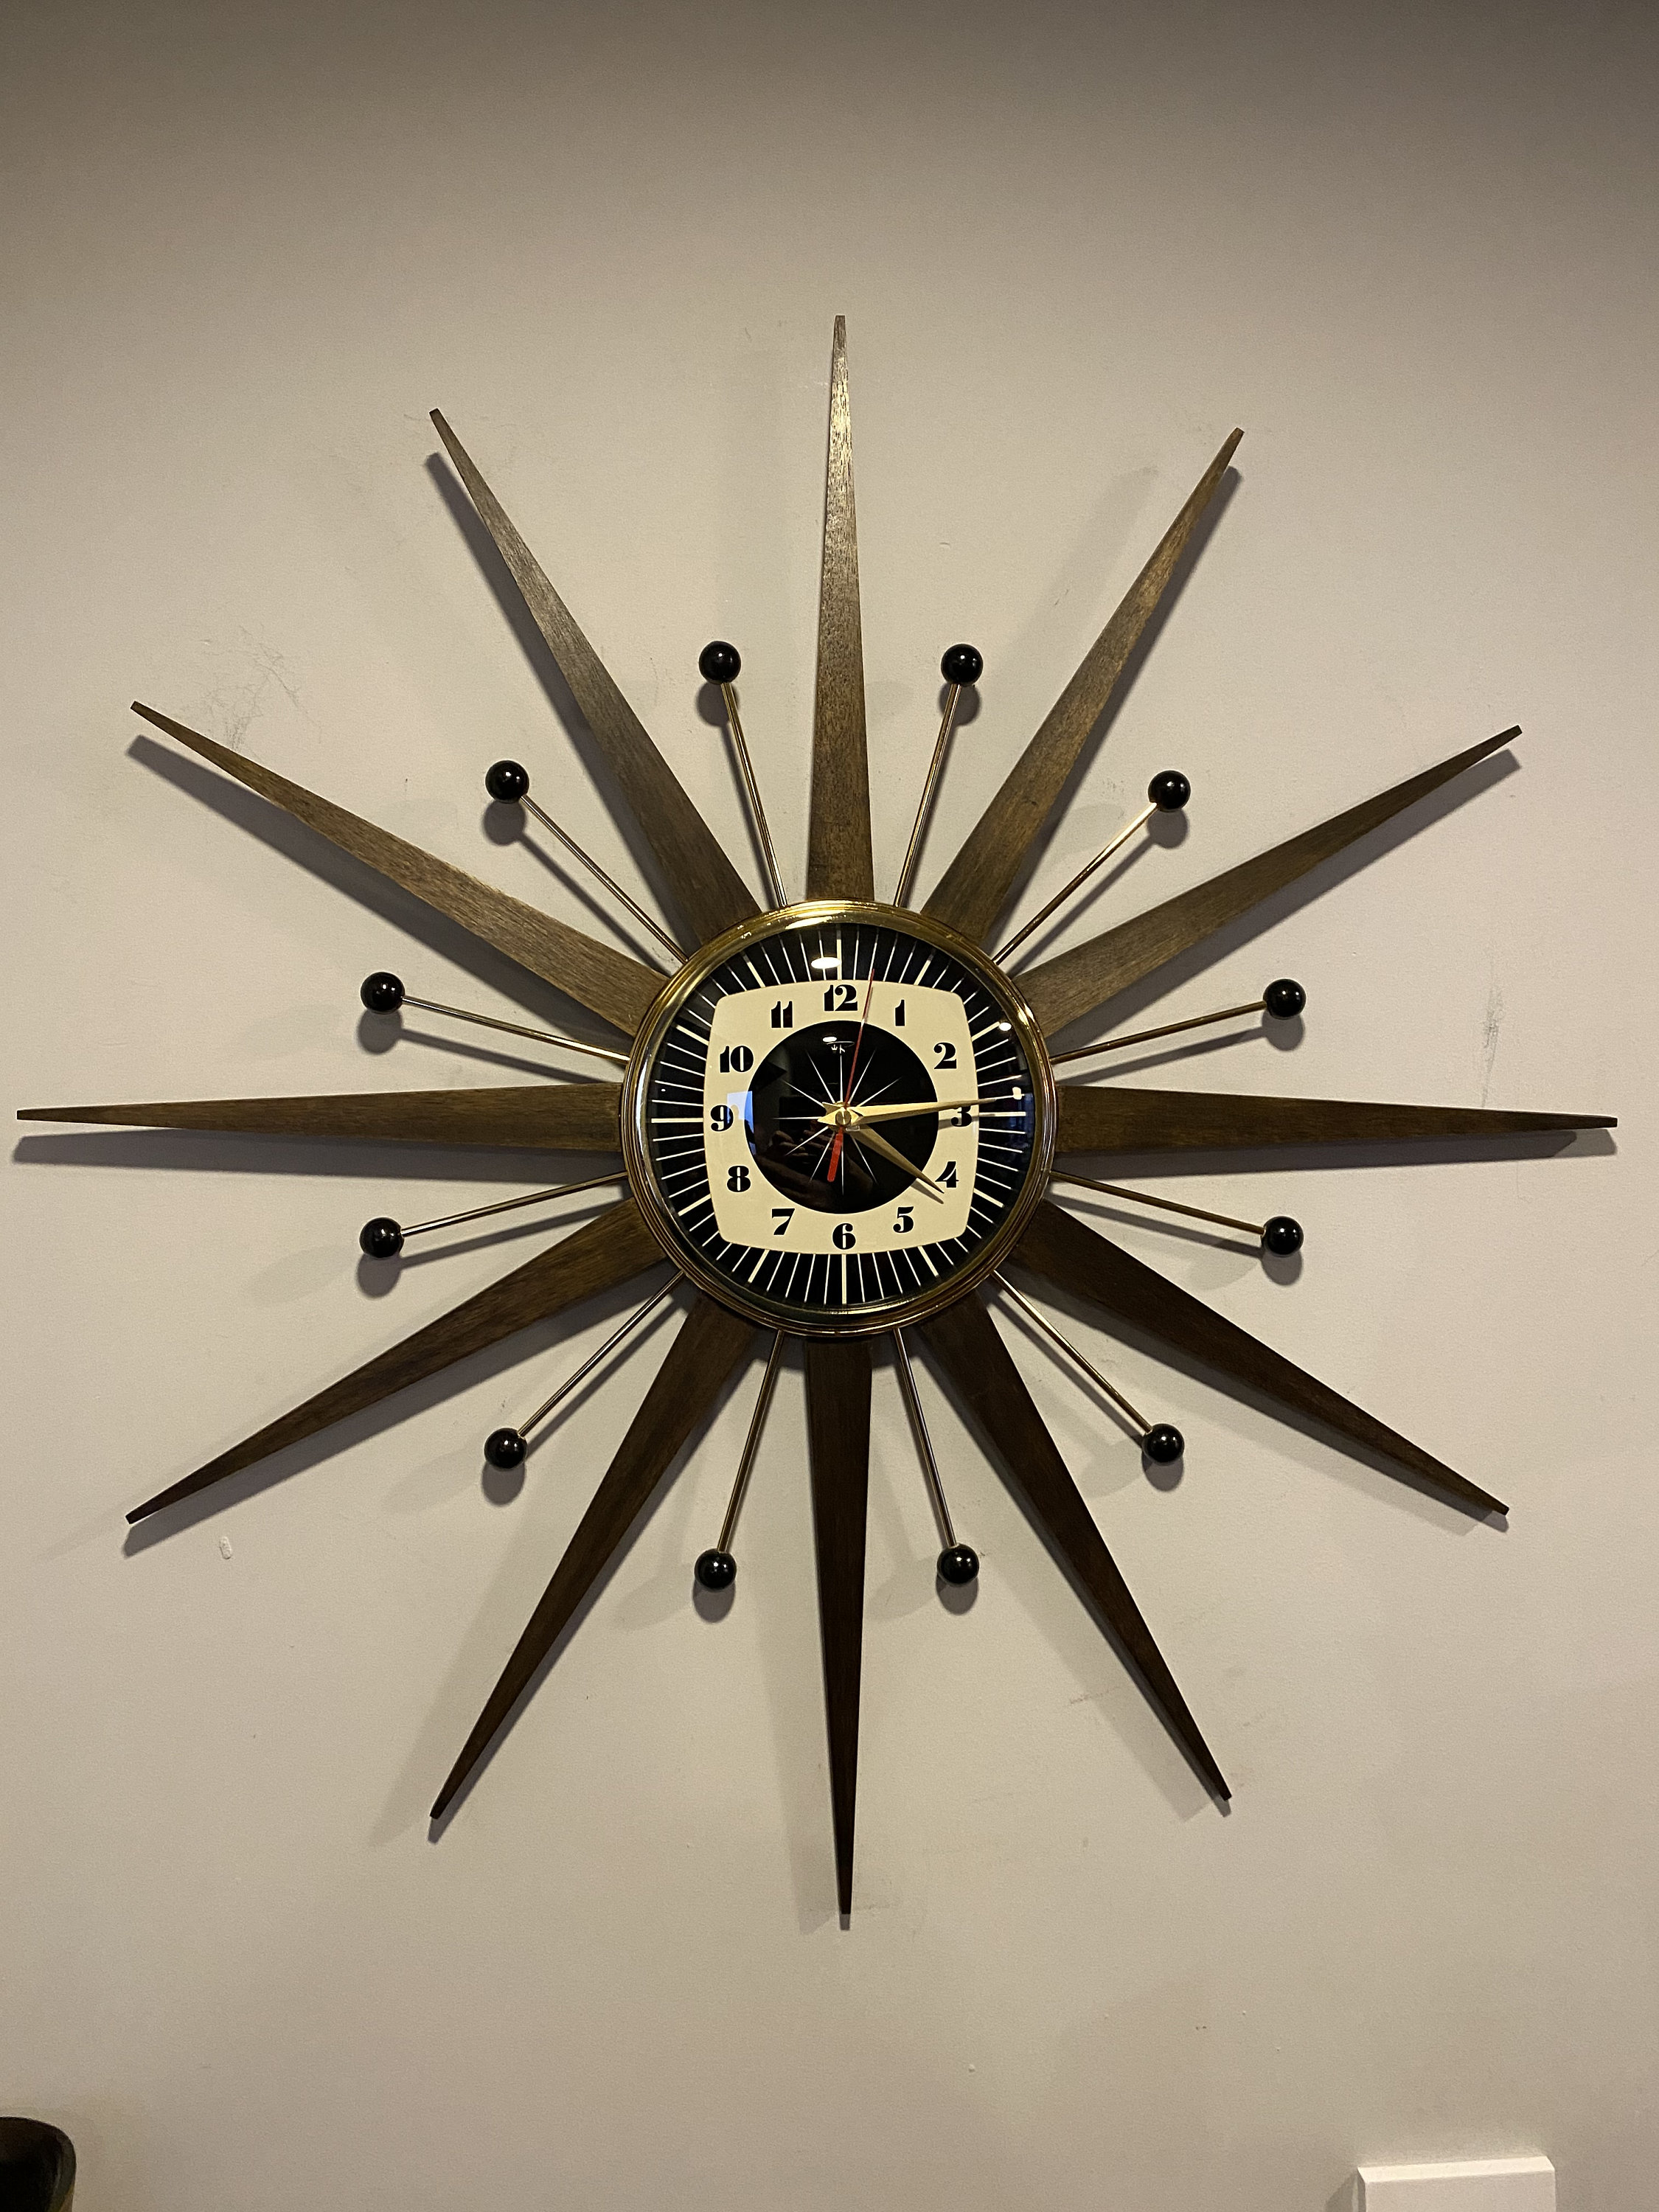 27 inch Hand Made Mid Century style Starburst Sunburst Clock by Royale Welby style Medium Teak Rays /& with 1950s style Teal Dial